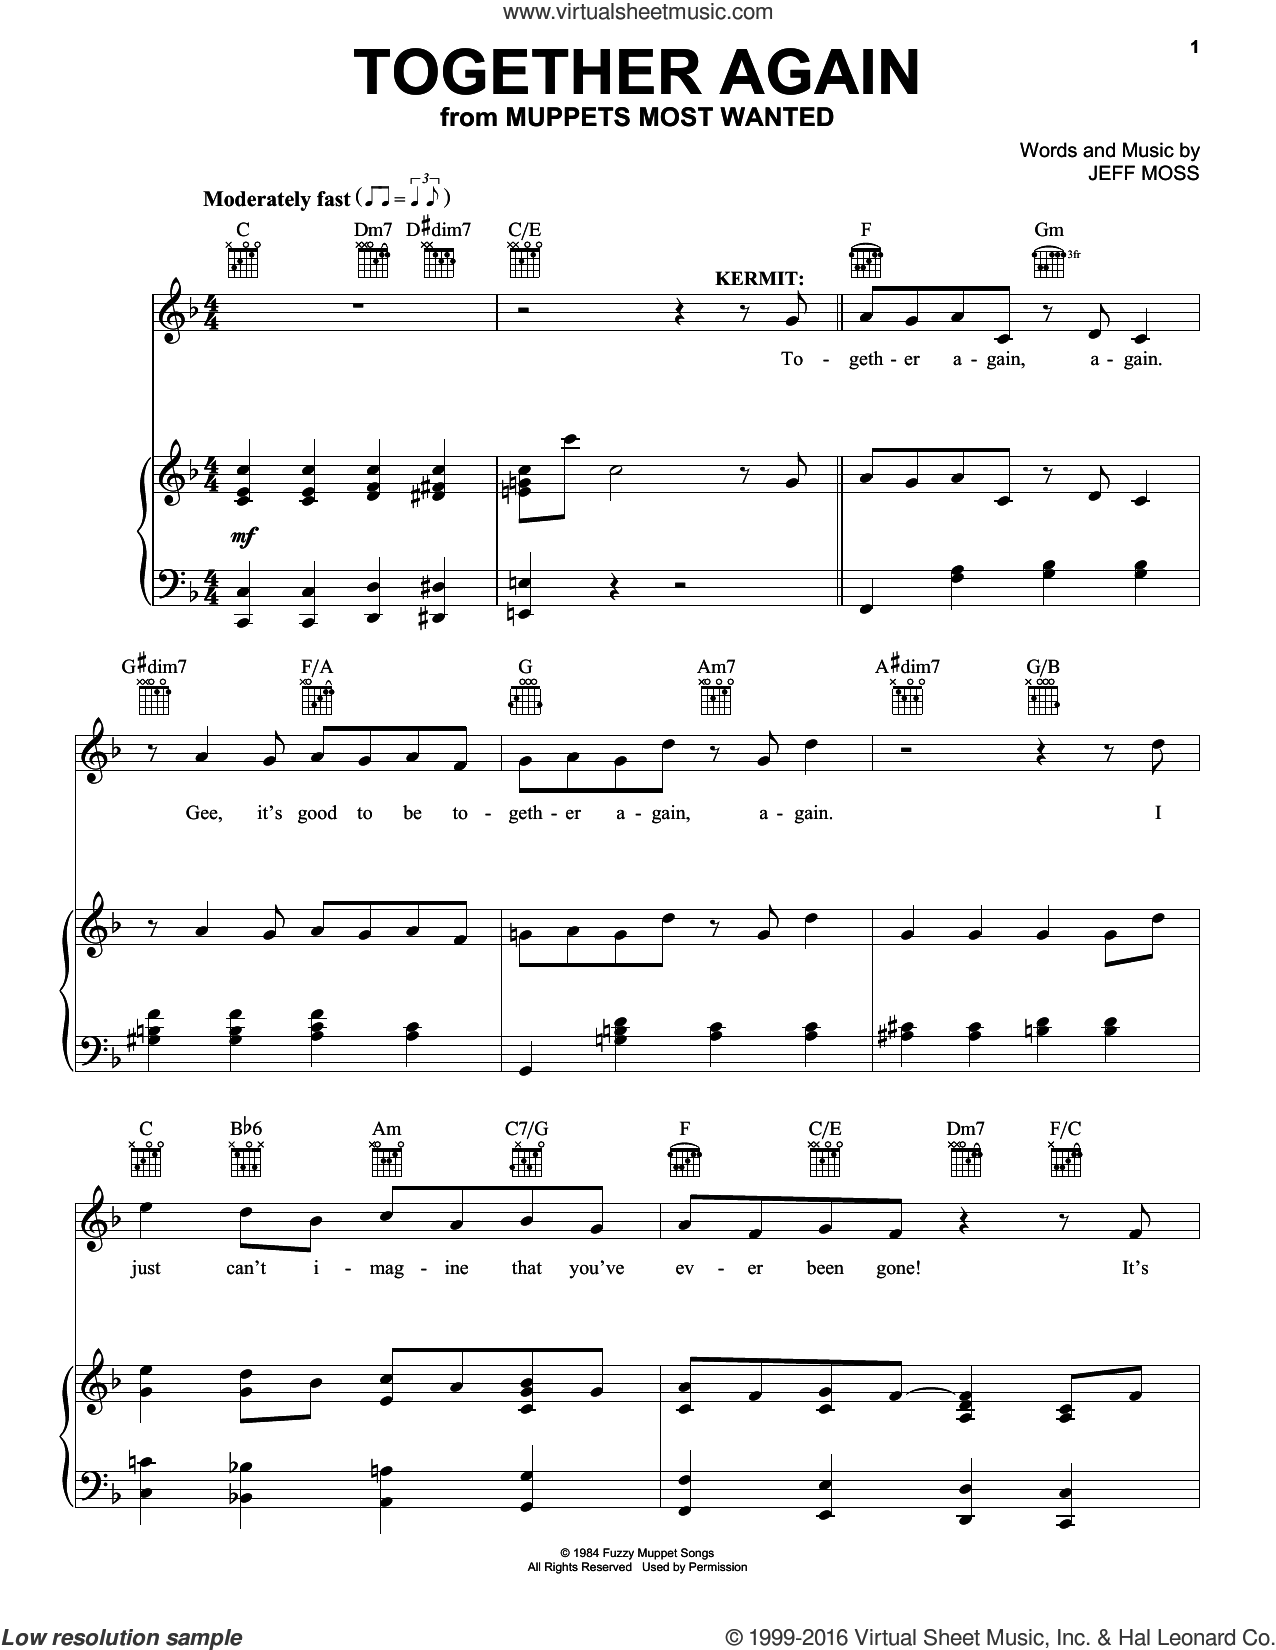 Together Again sheet music for voice, piano or guitar by Jeff Moss, intermediate skill level